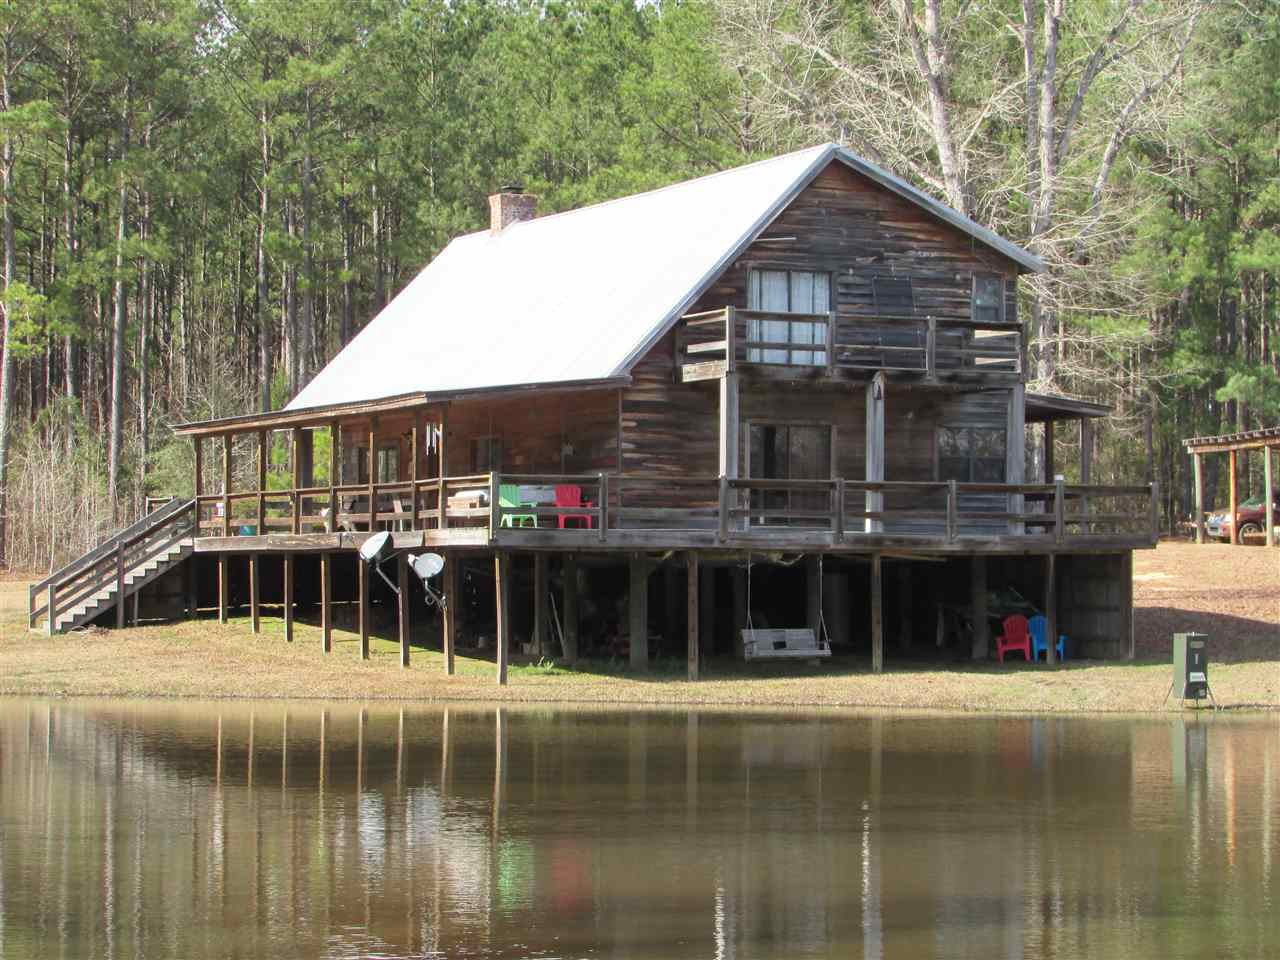 220 HOPE LITTLE RD   Pinola MS 39149 - Mississippi property for sale